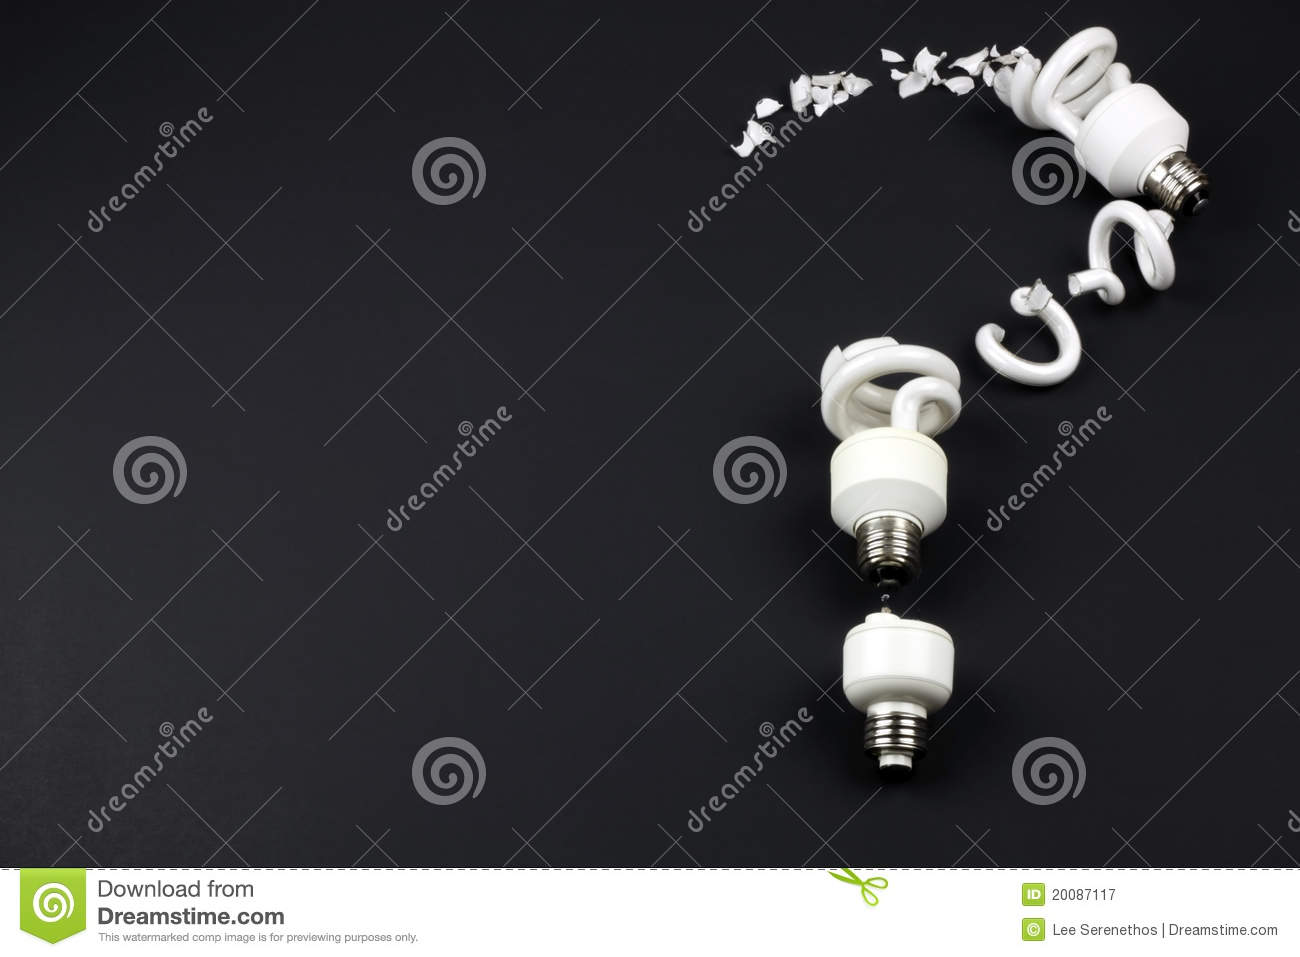 Recycling CFL